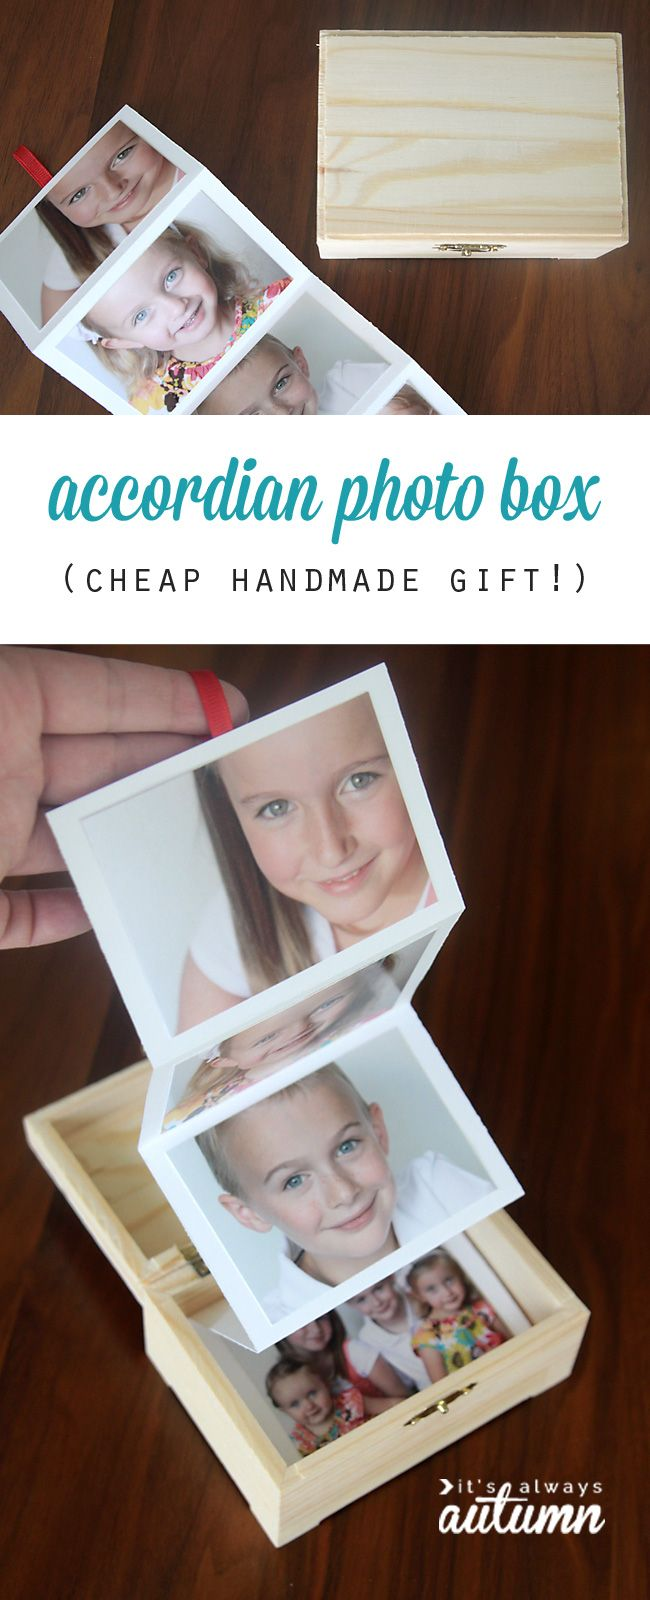 photo box - easy & cheap...